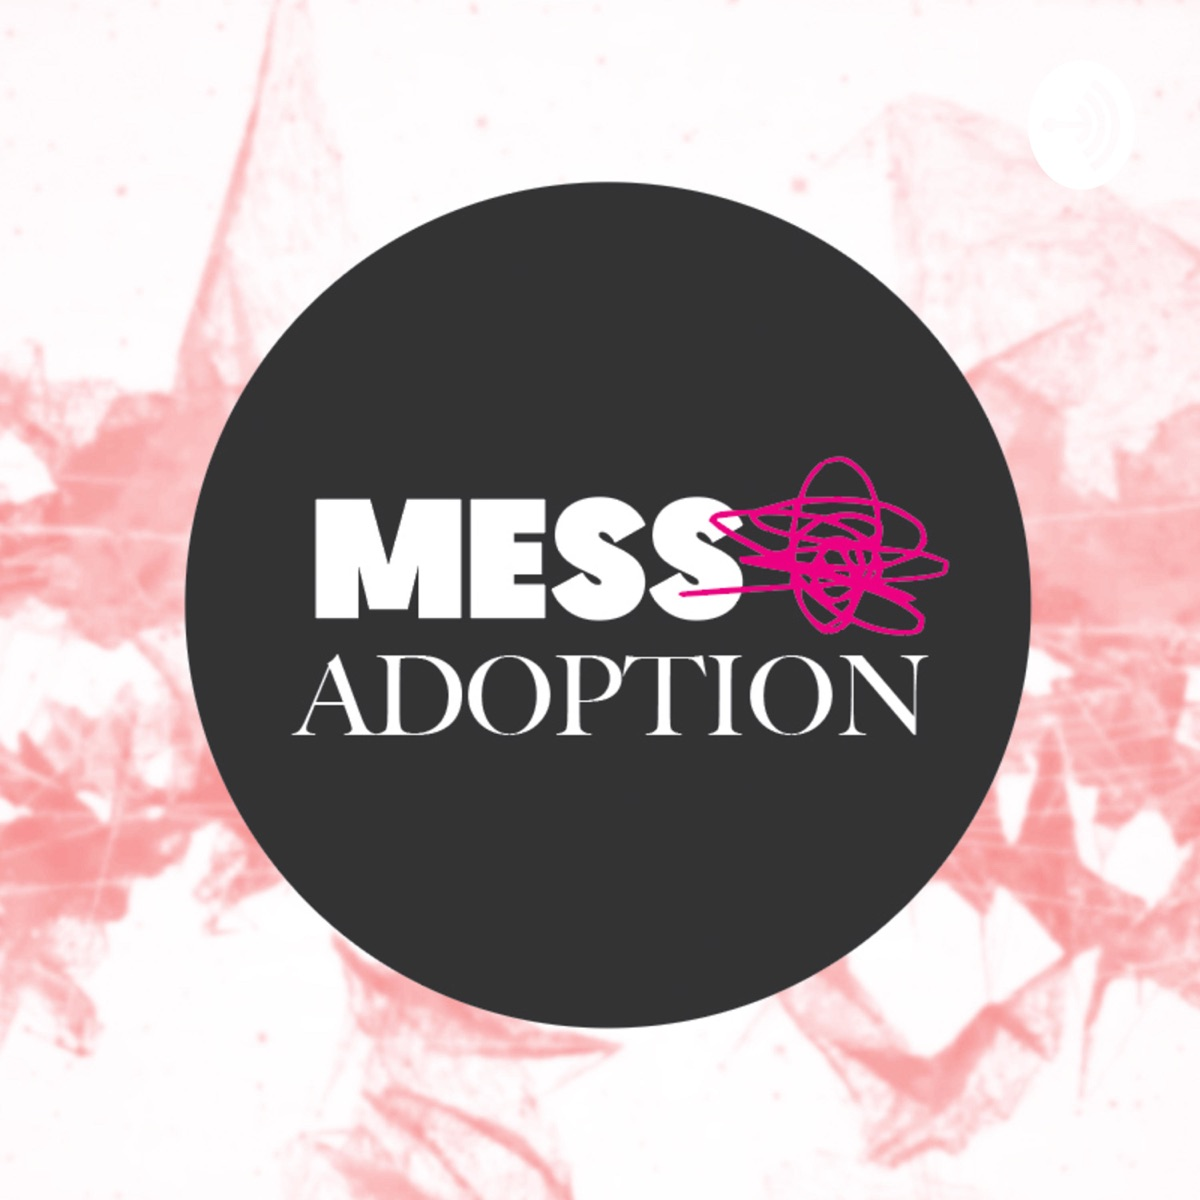 Mess Adoption